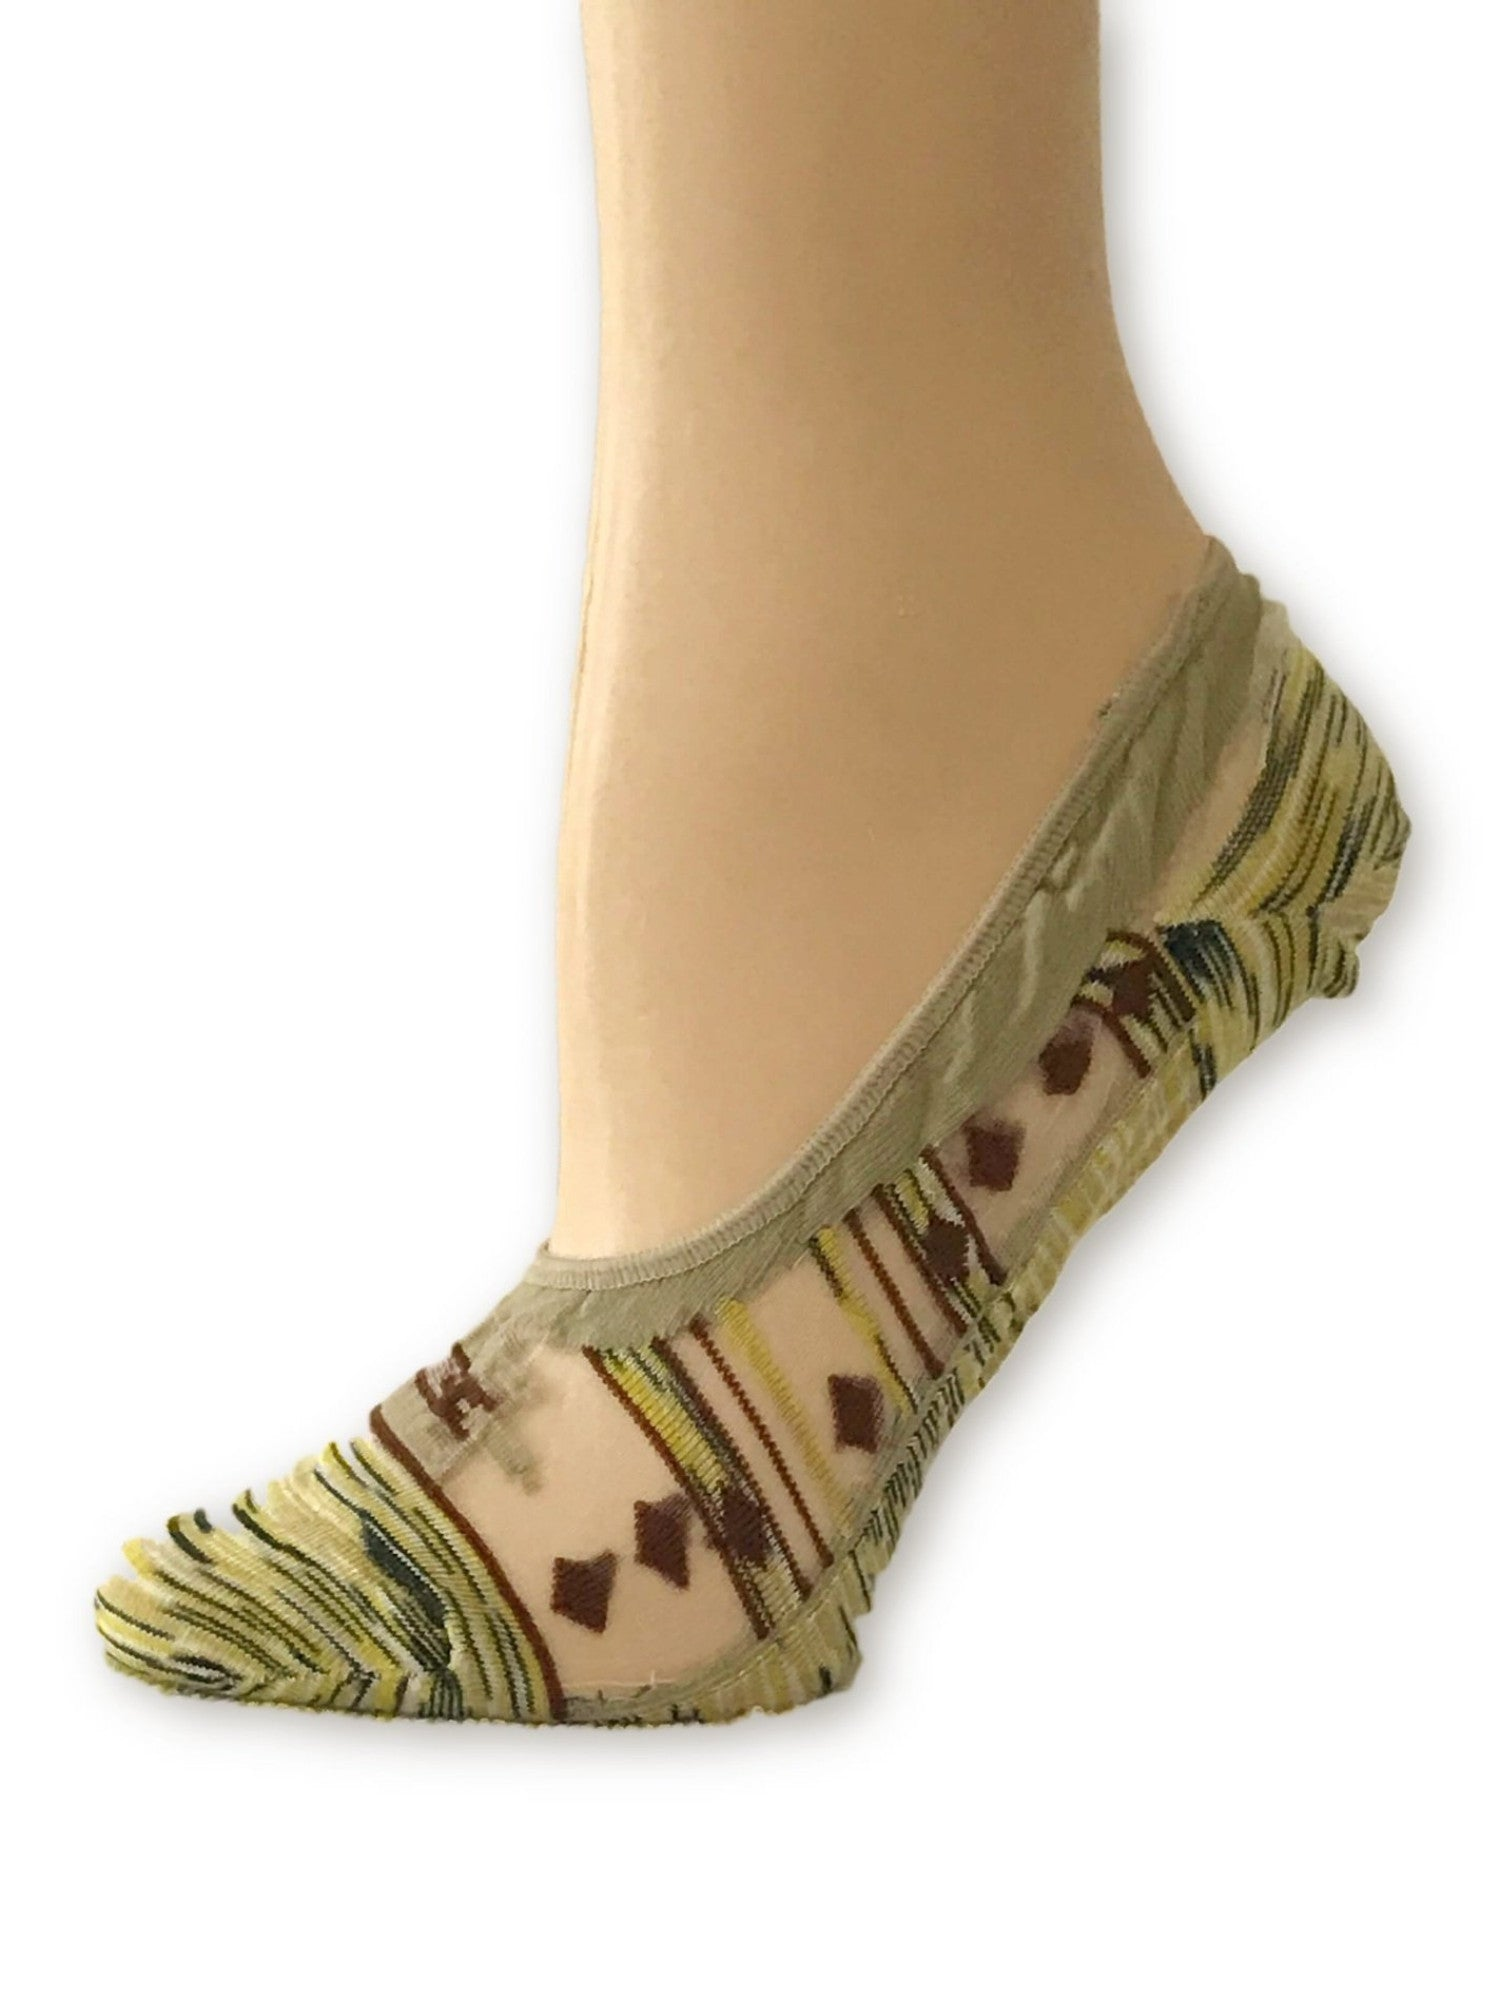 Yellow/Brown Patterned Ankle Sheer Socks - Global Trendz Fashion®